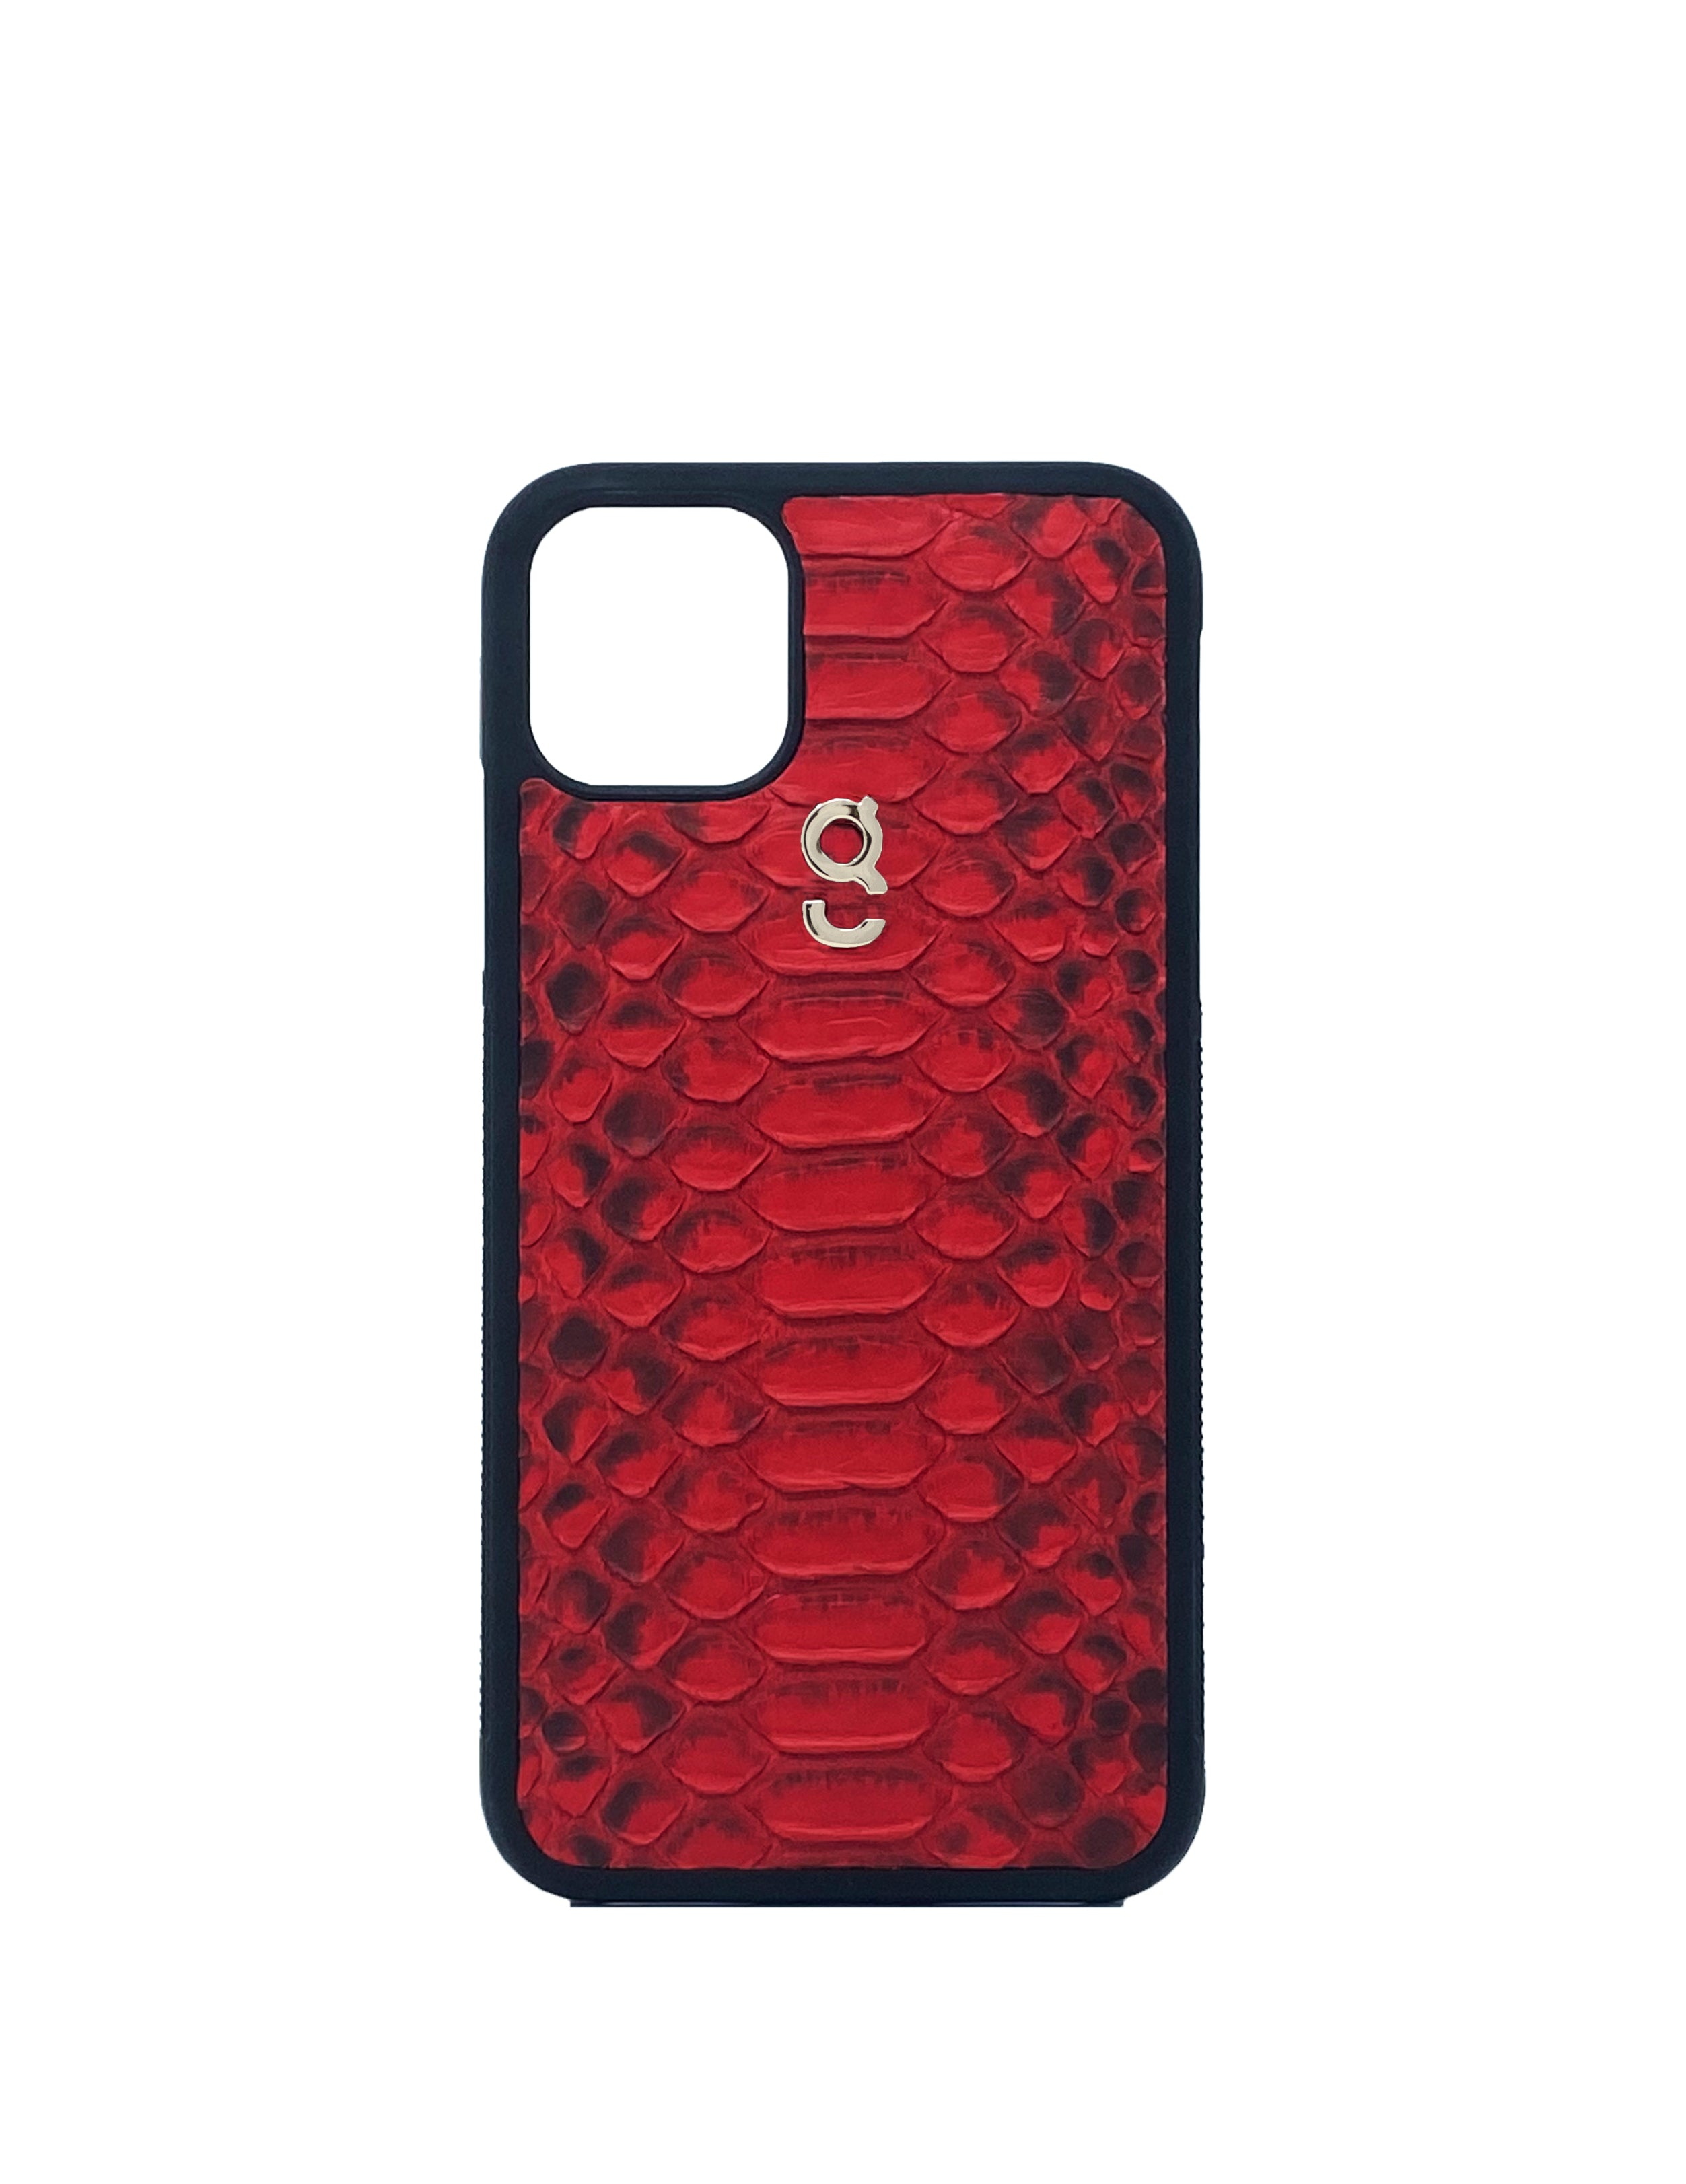 Red warm up  - iPhone case - gcoulee